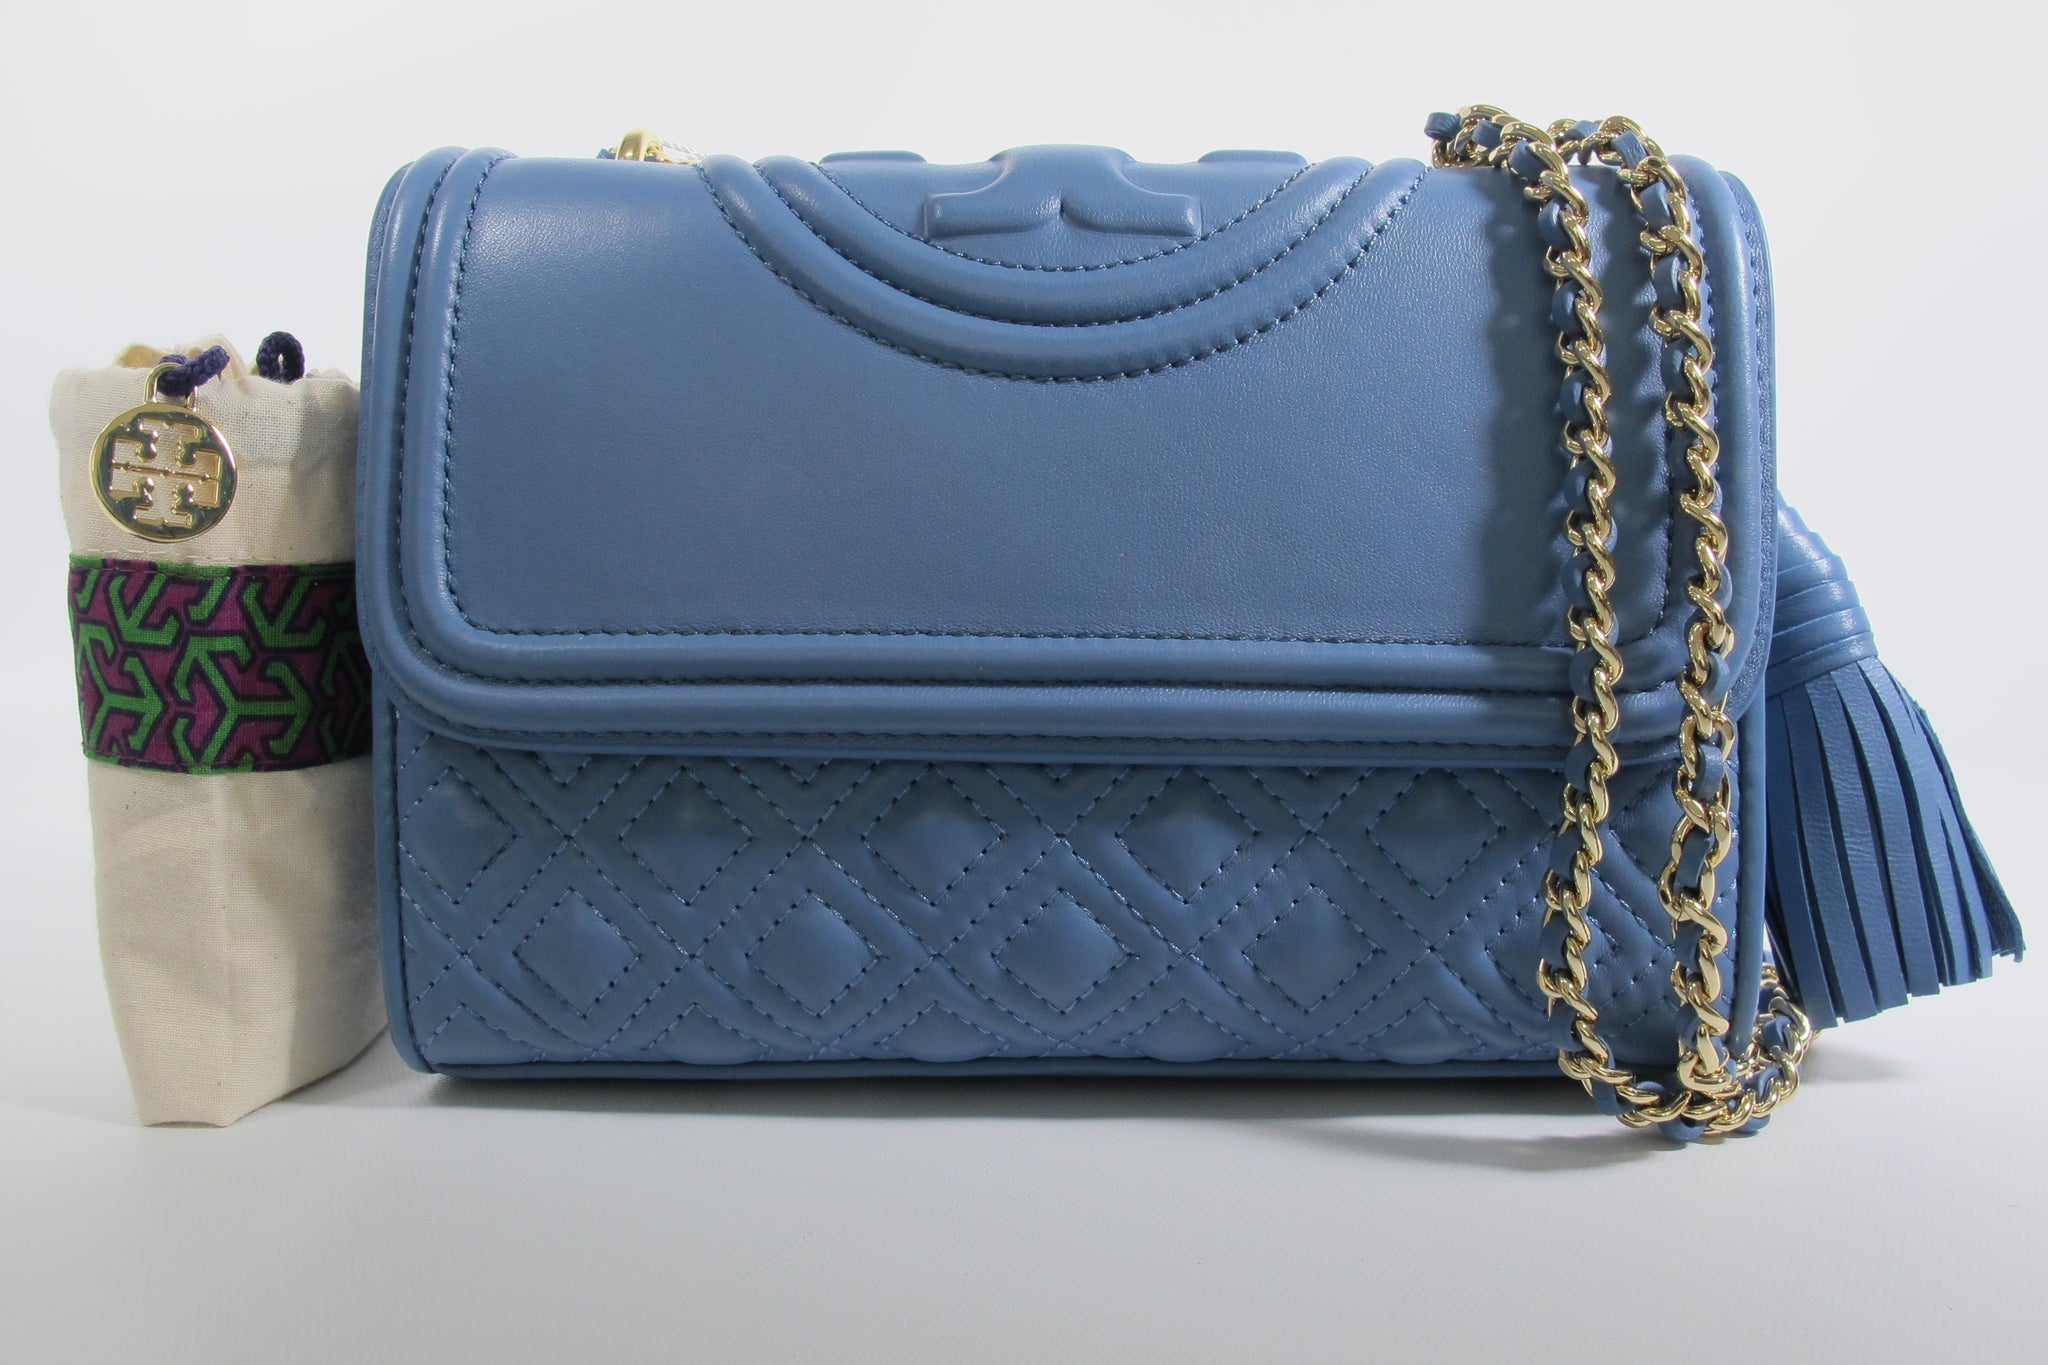 Fleming Small Convertible Shoulder Bag in Blue Lotus